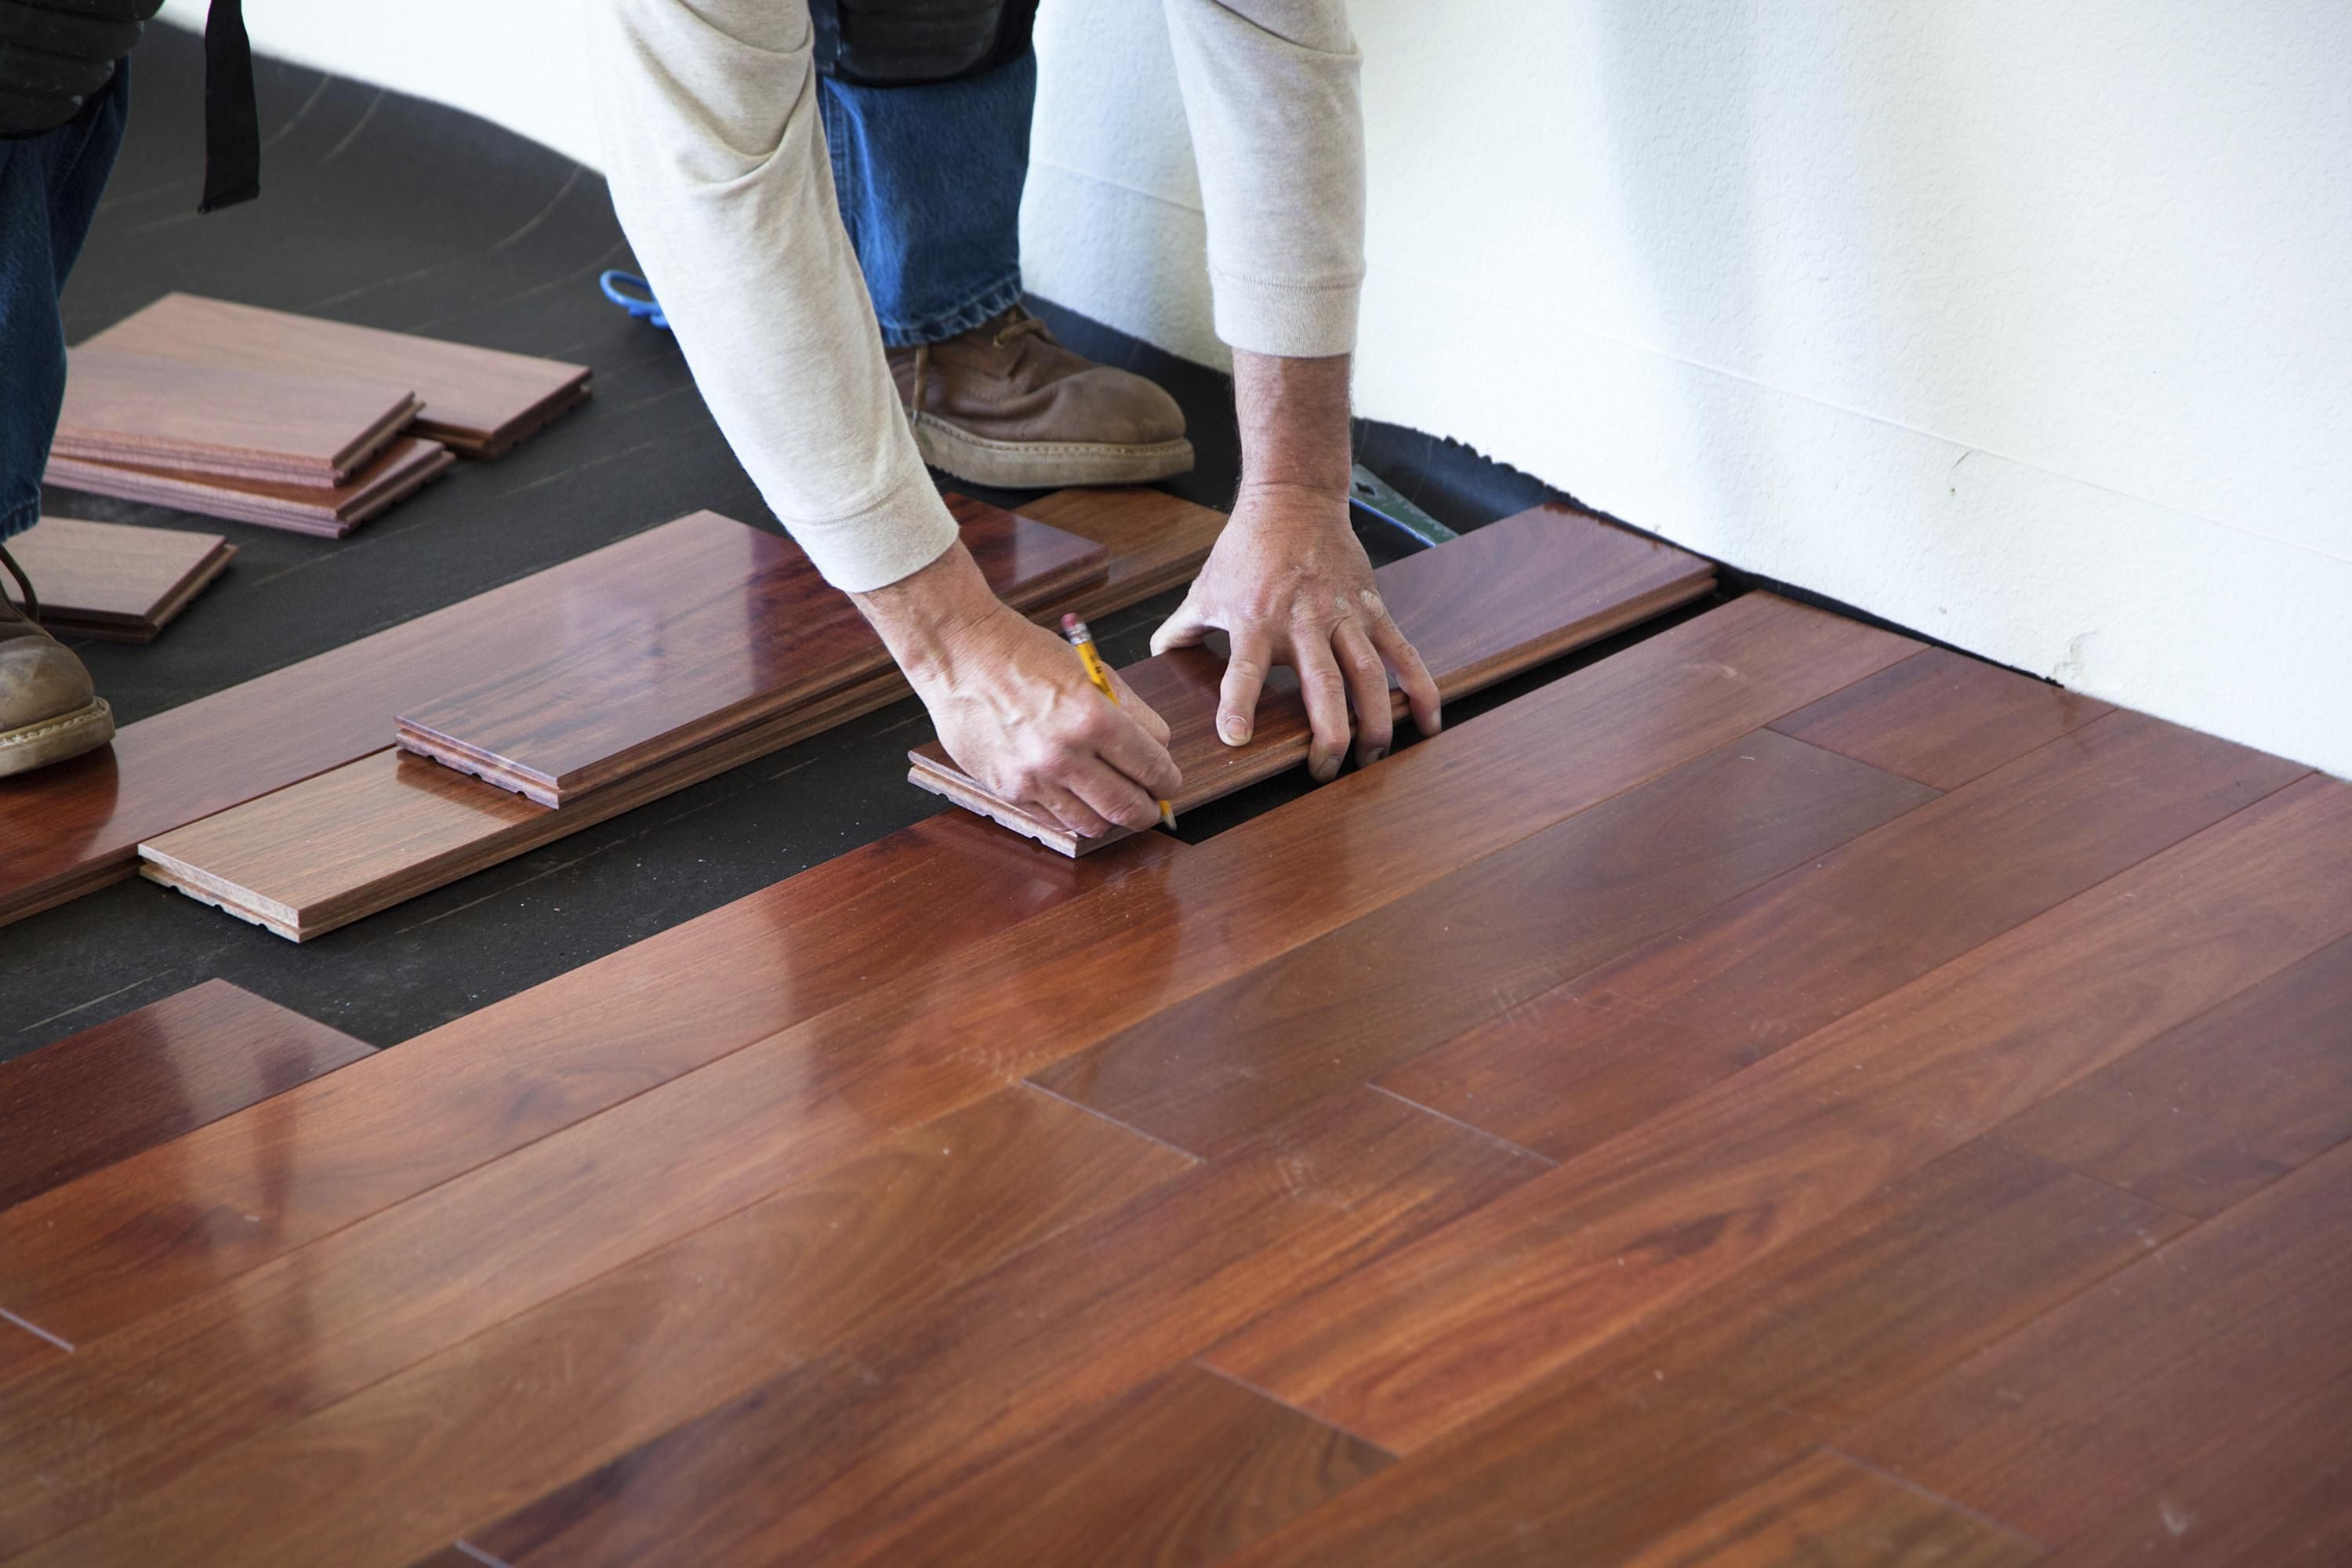 Empire Engineered Hardwood Flooring Of 18 New How Much Do Hardwood Floors Cost Image Dizpos Com Intended for How Much Do Hardwood Floors Cost Inspirational This is How Much Hardwood Flooring to order Images